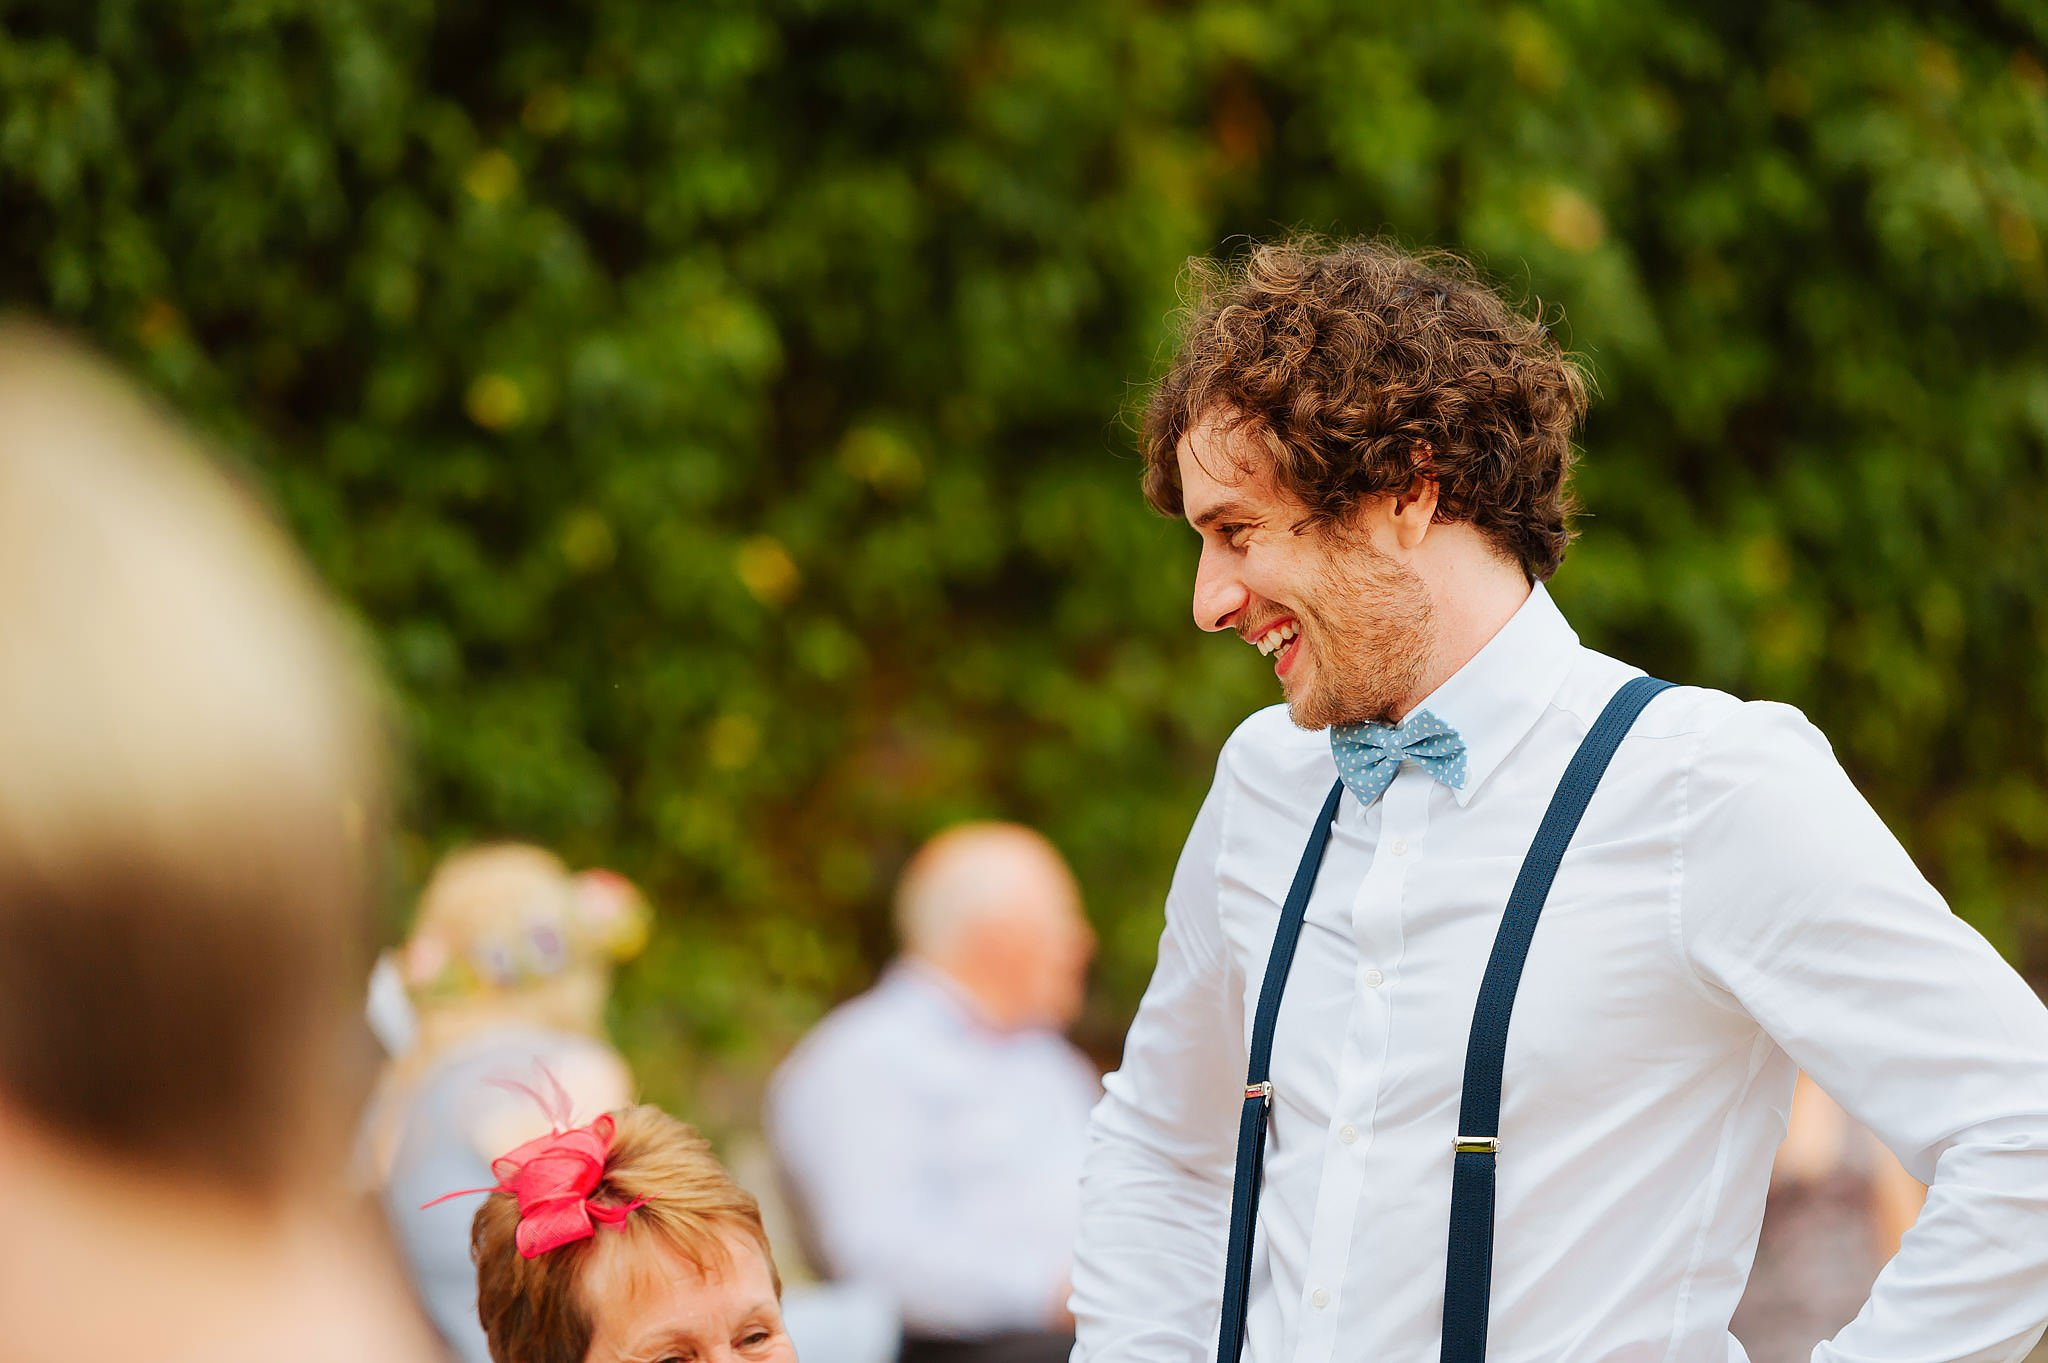 Wedding photography at Hellens Manor in Herefordshire, West Midlands | Shelley + Ian 106